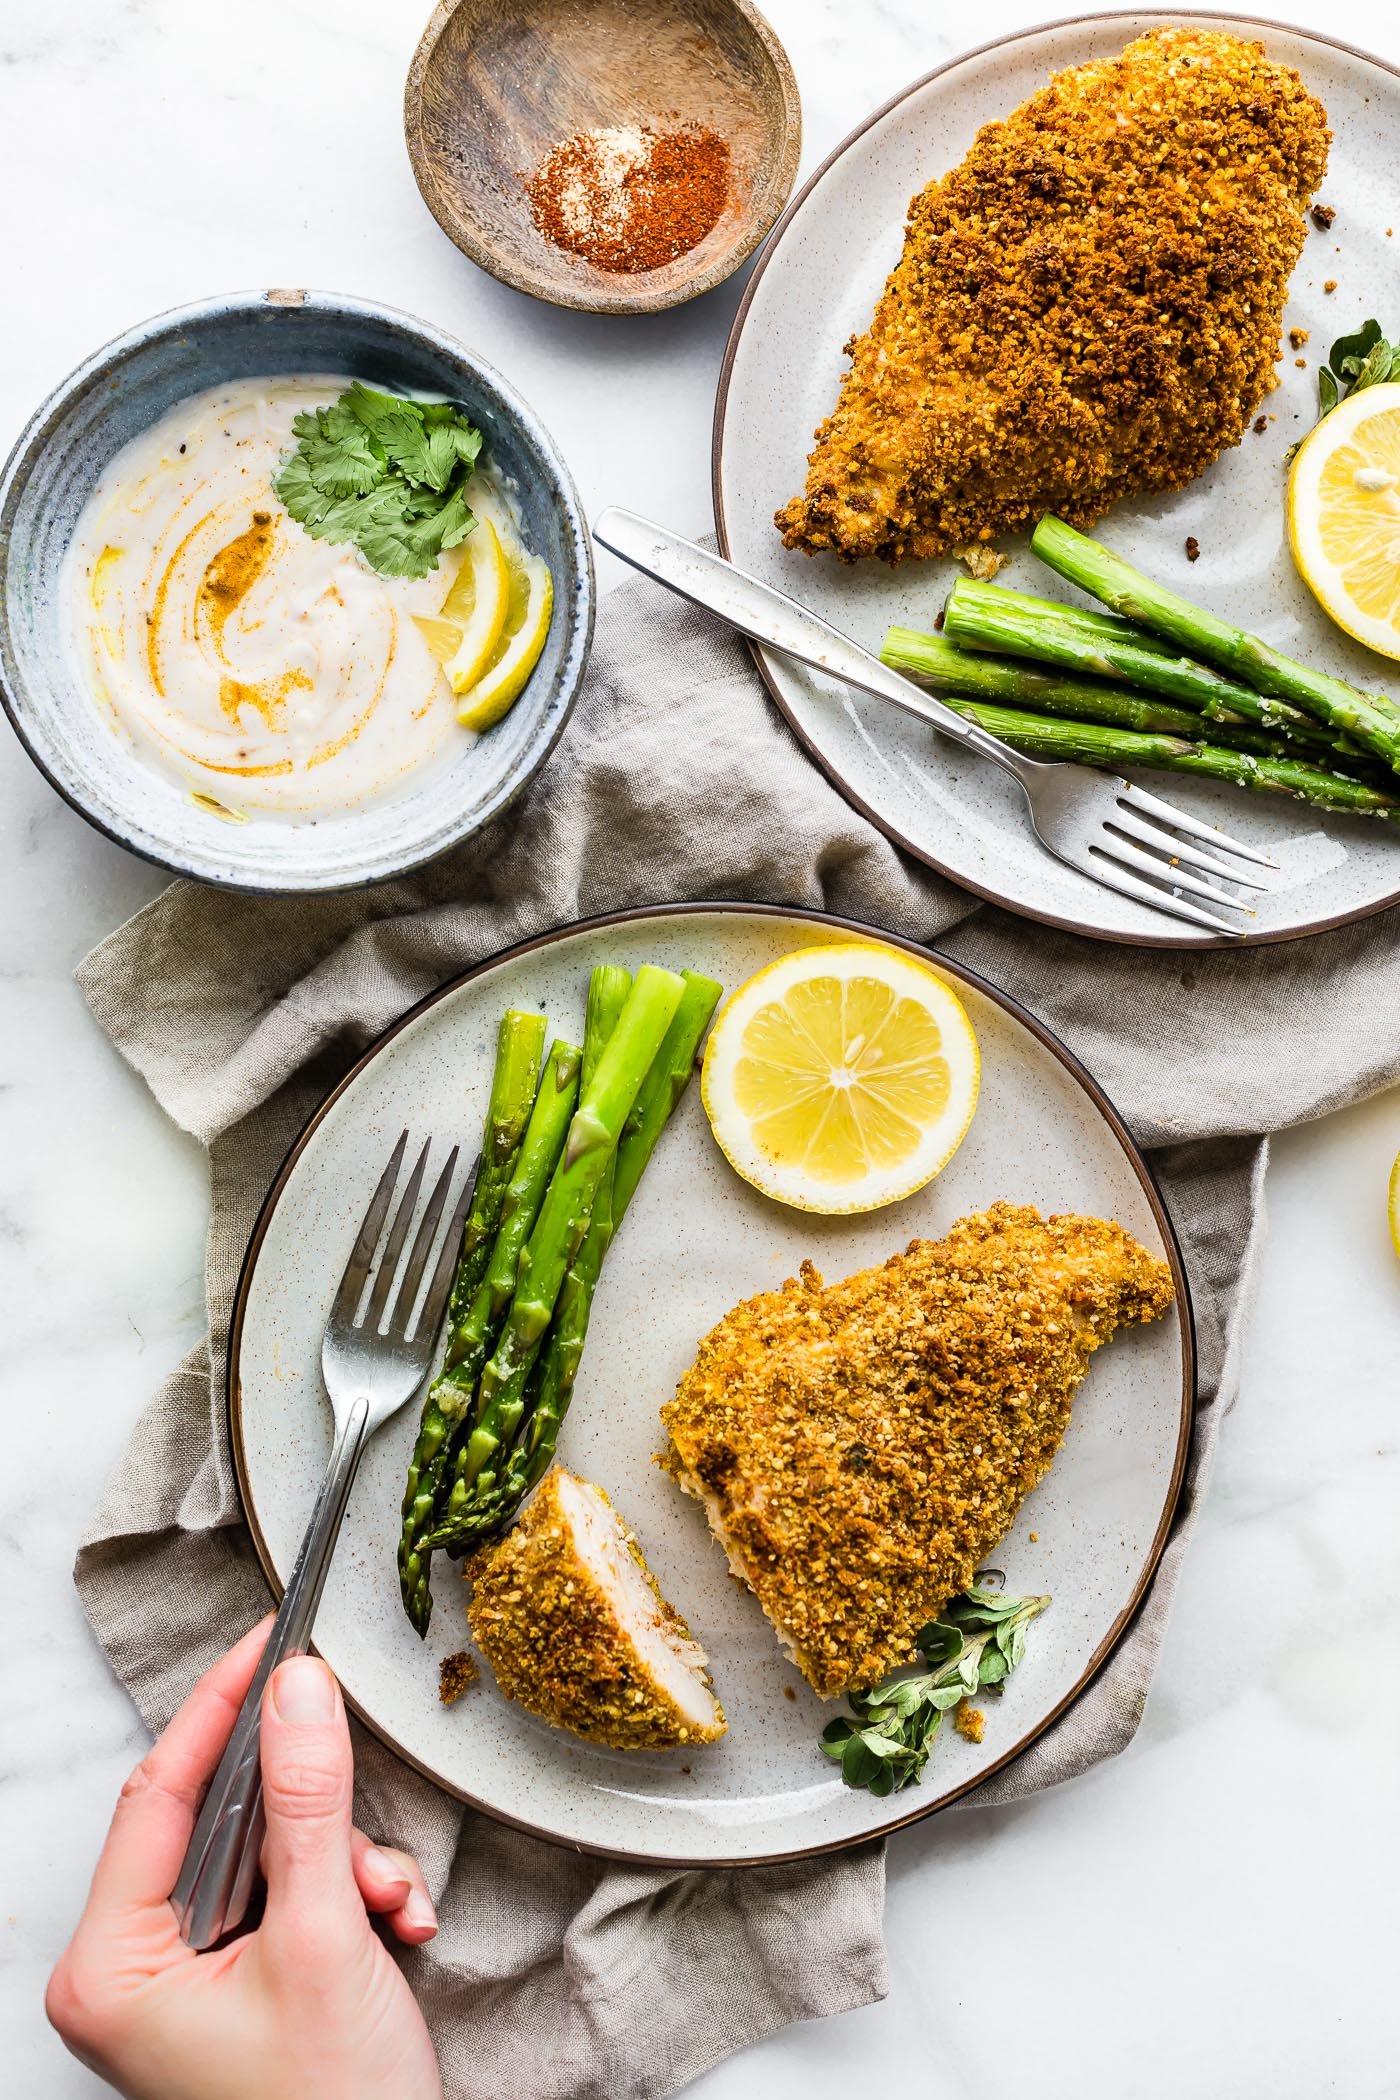 Gluten-free Panko Crusted Paprika Chicken recipe! A baked chicken recipe with gluten-free panko bread crumbs and paprika spices! Easy, quick, one pan meal.